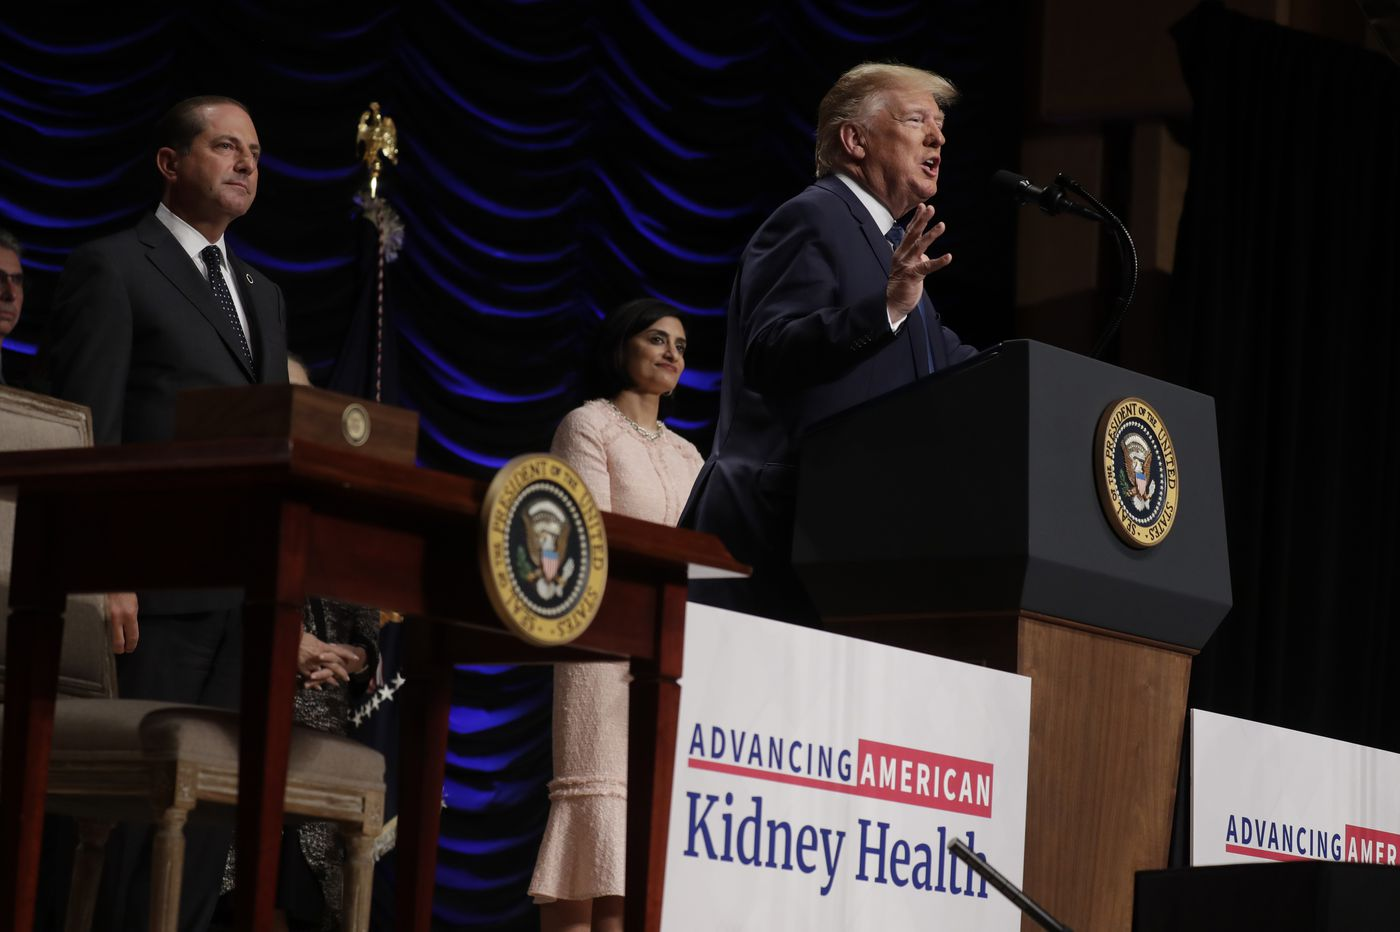 Trump administration finalizes rule that could make thousands more organs available for transplant